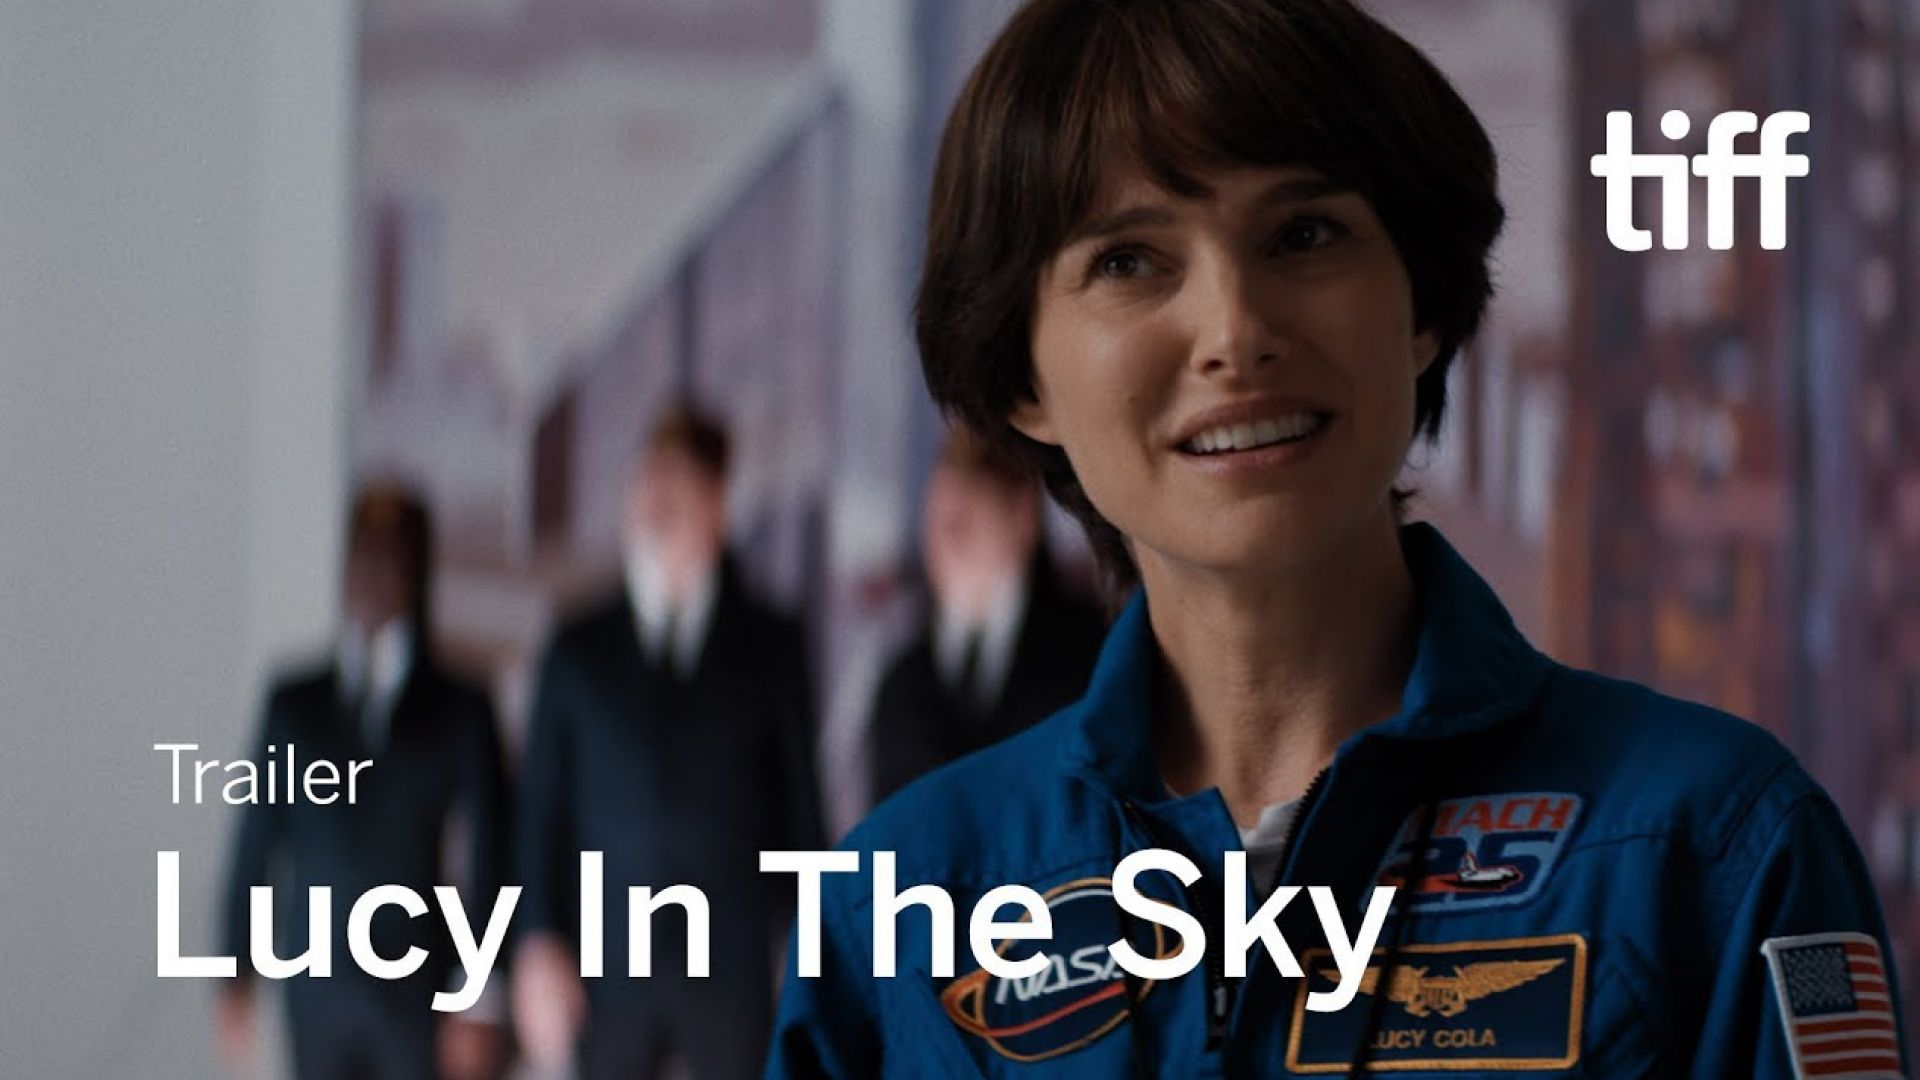 'Lucy in the Sky' trailer